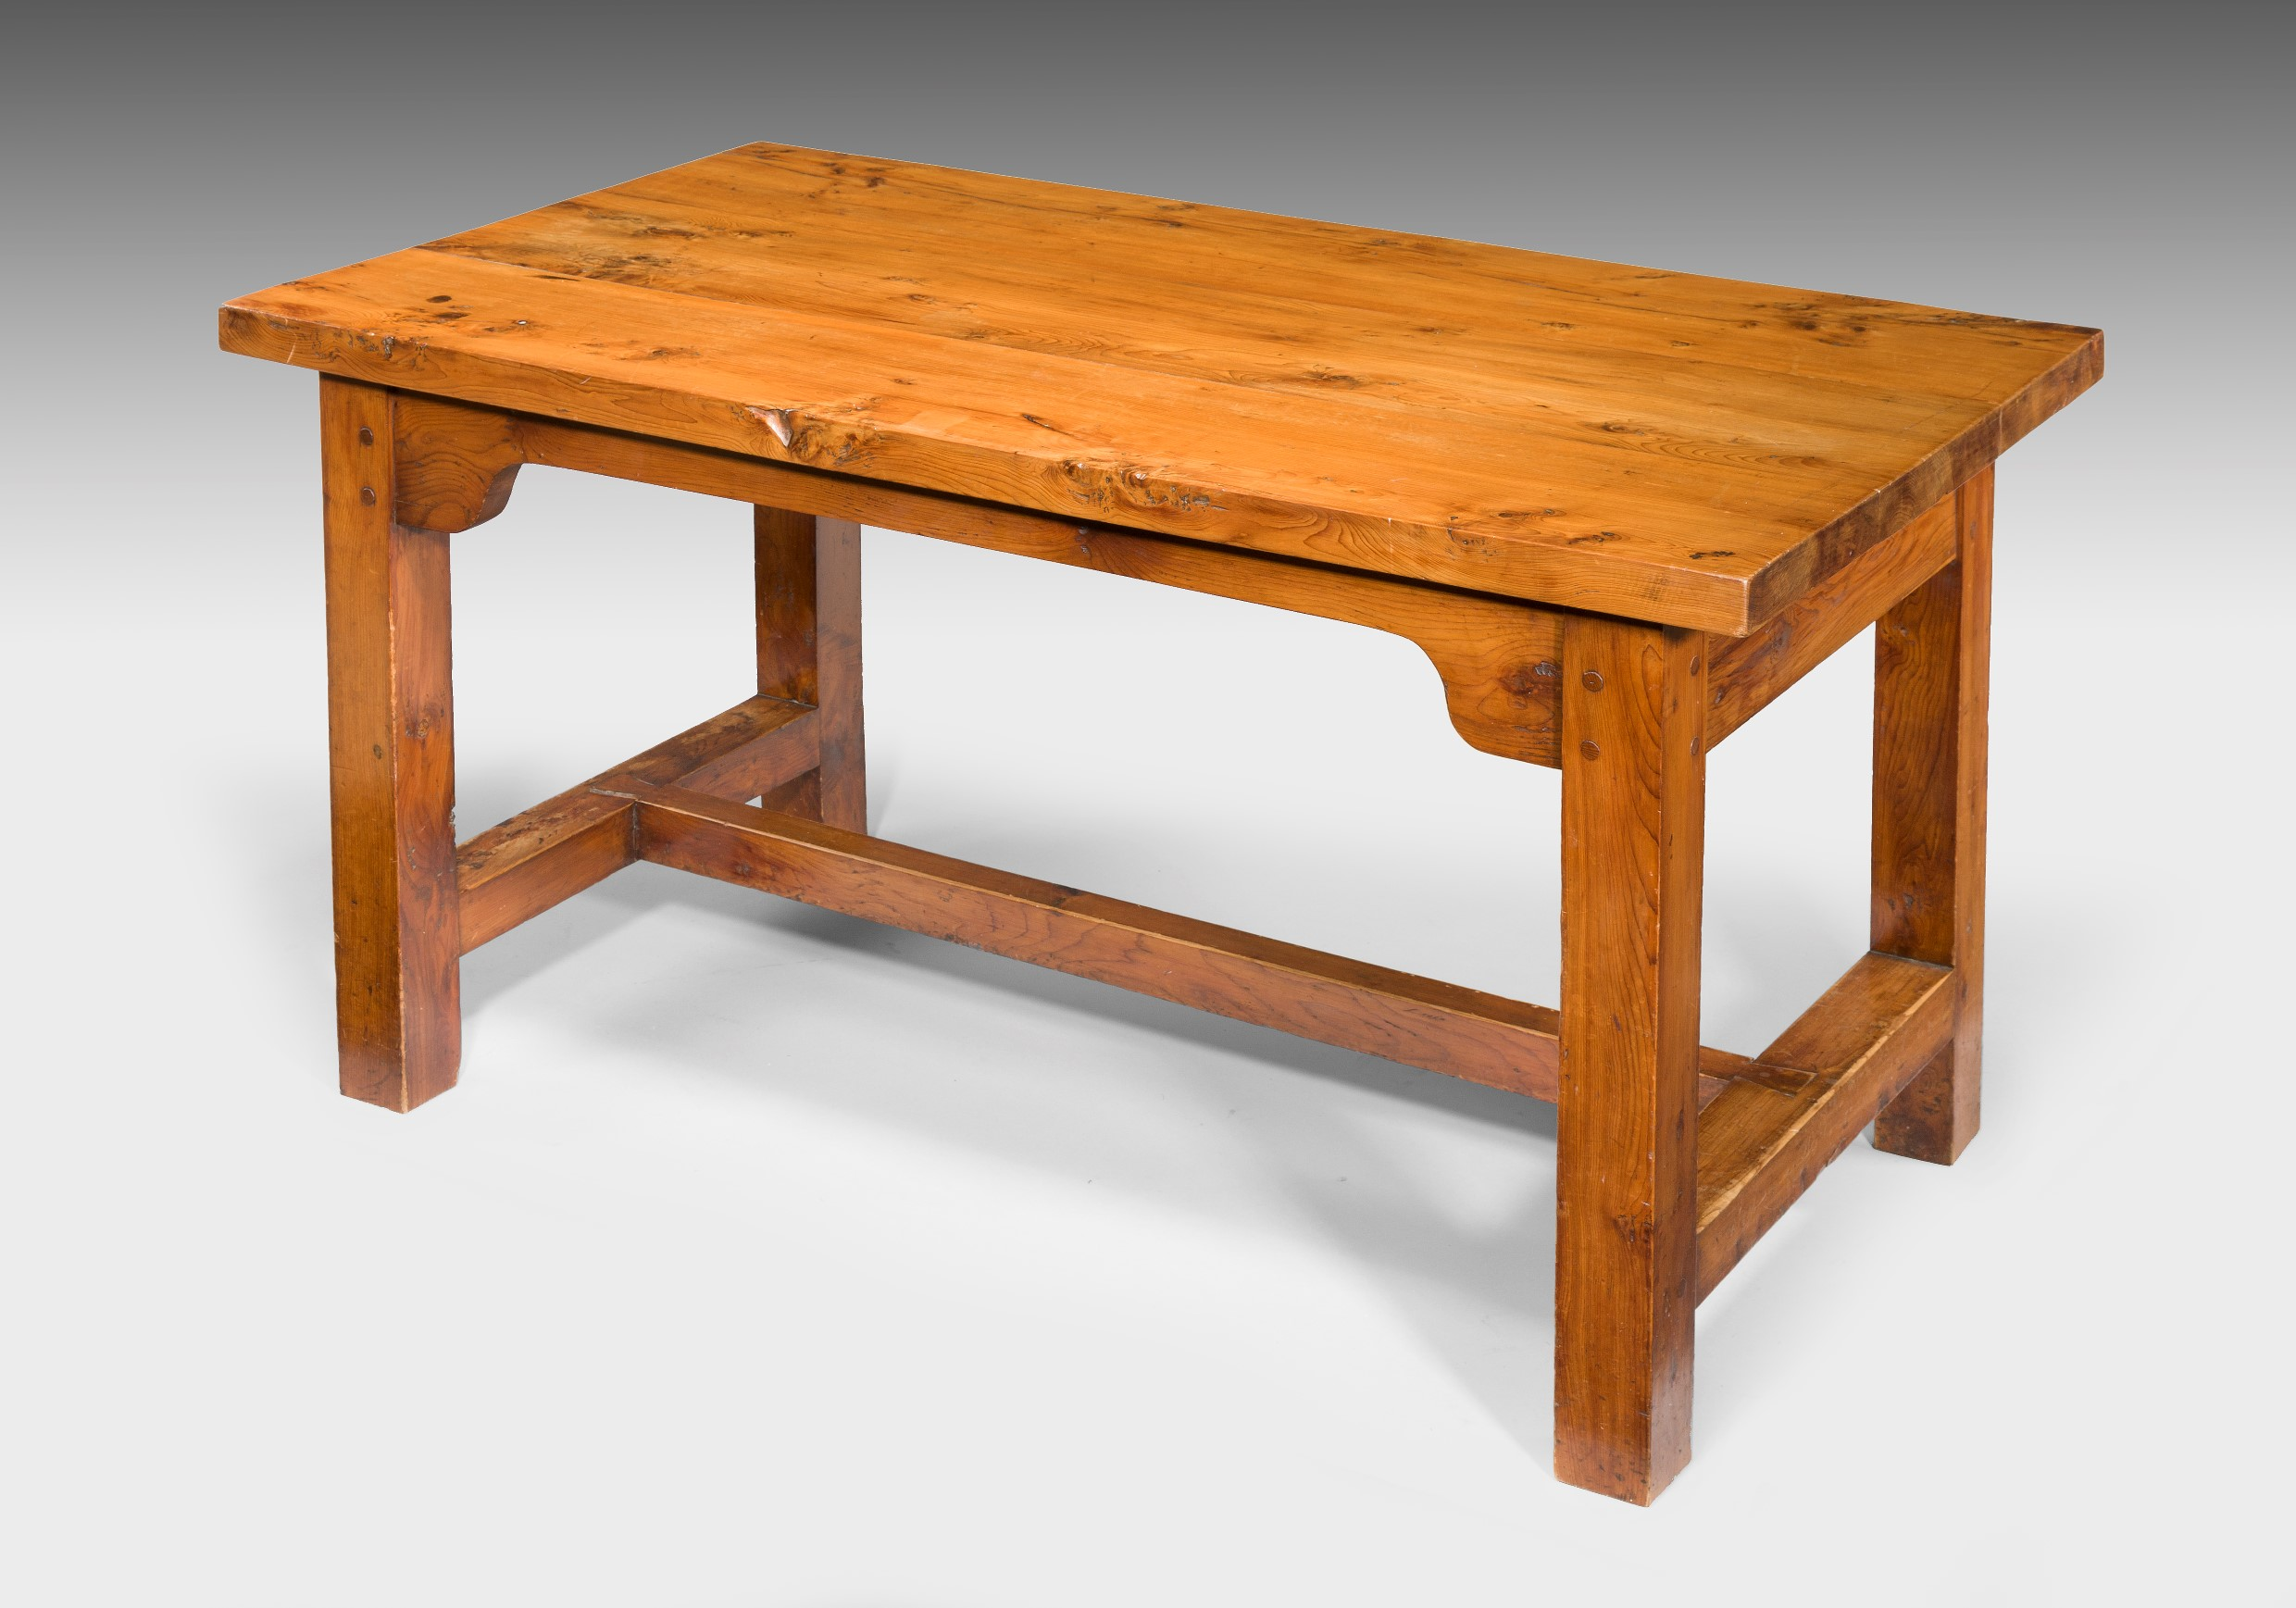 Antique, Solid Yew Kitchen/Dining Table Image 1 ...